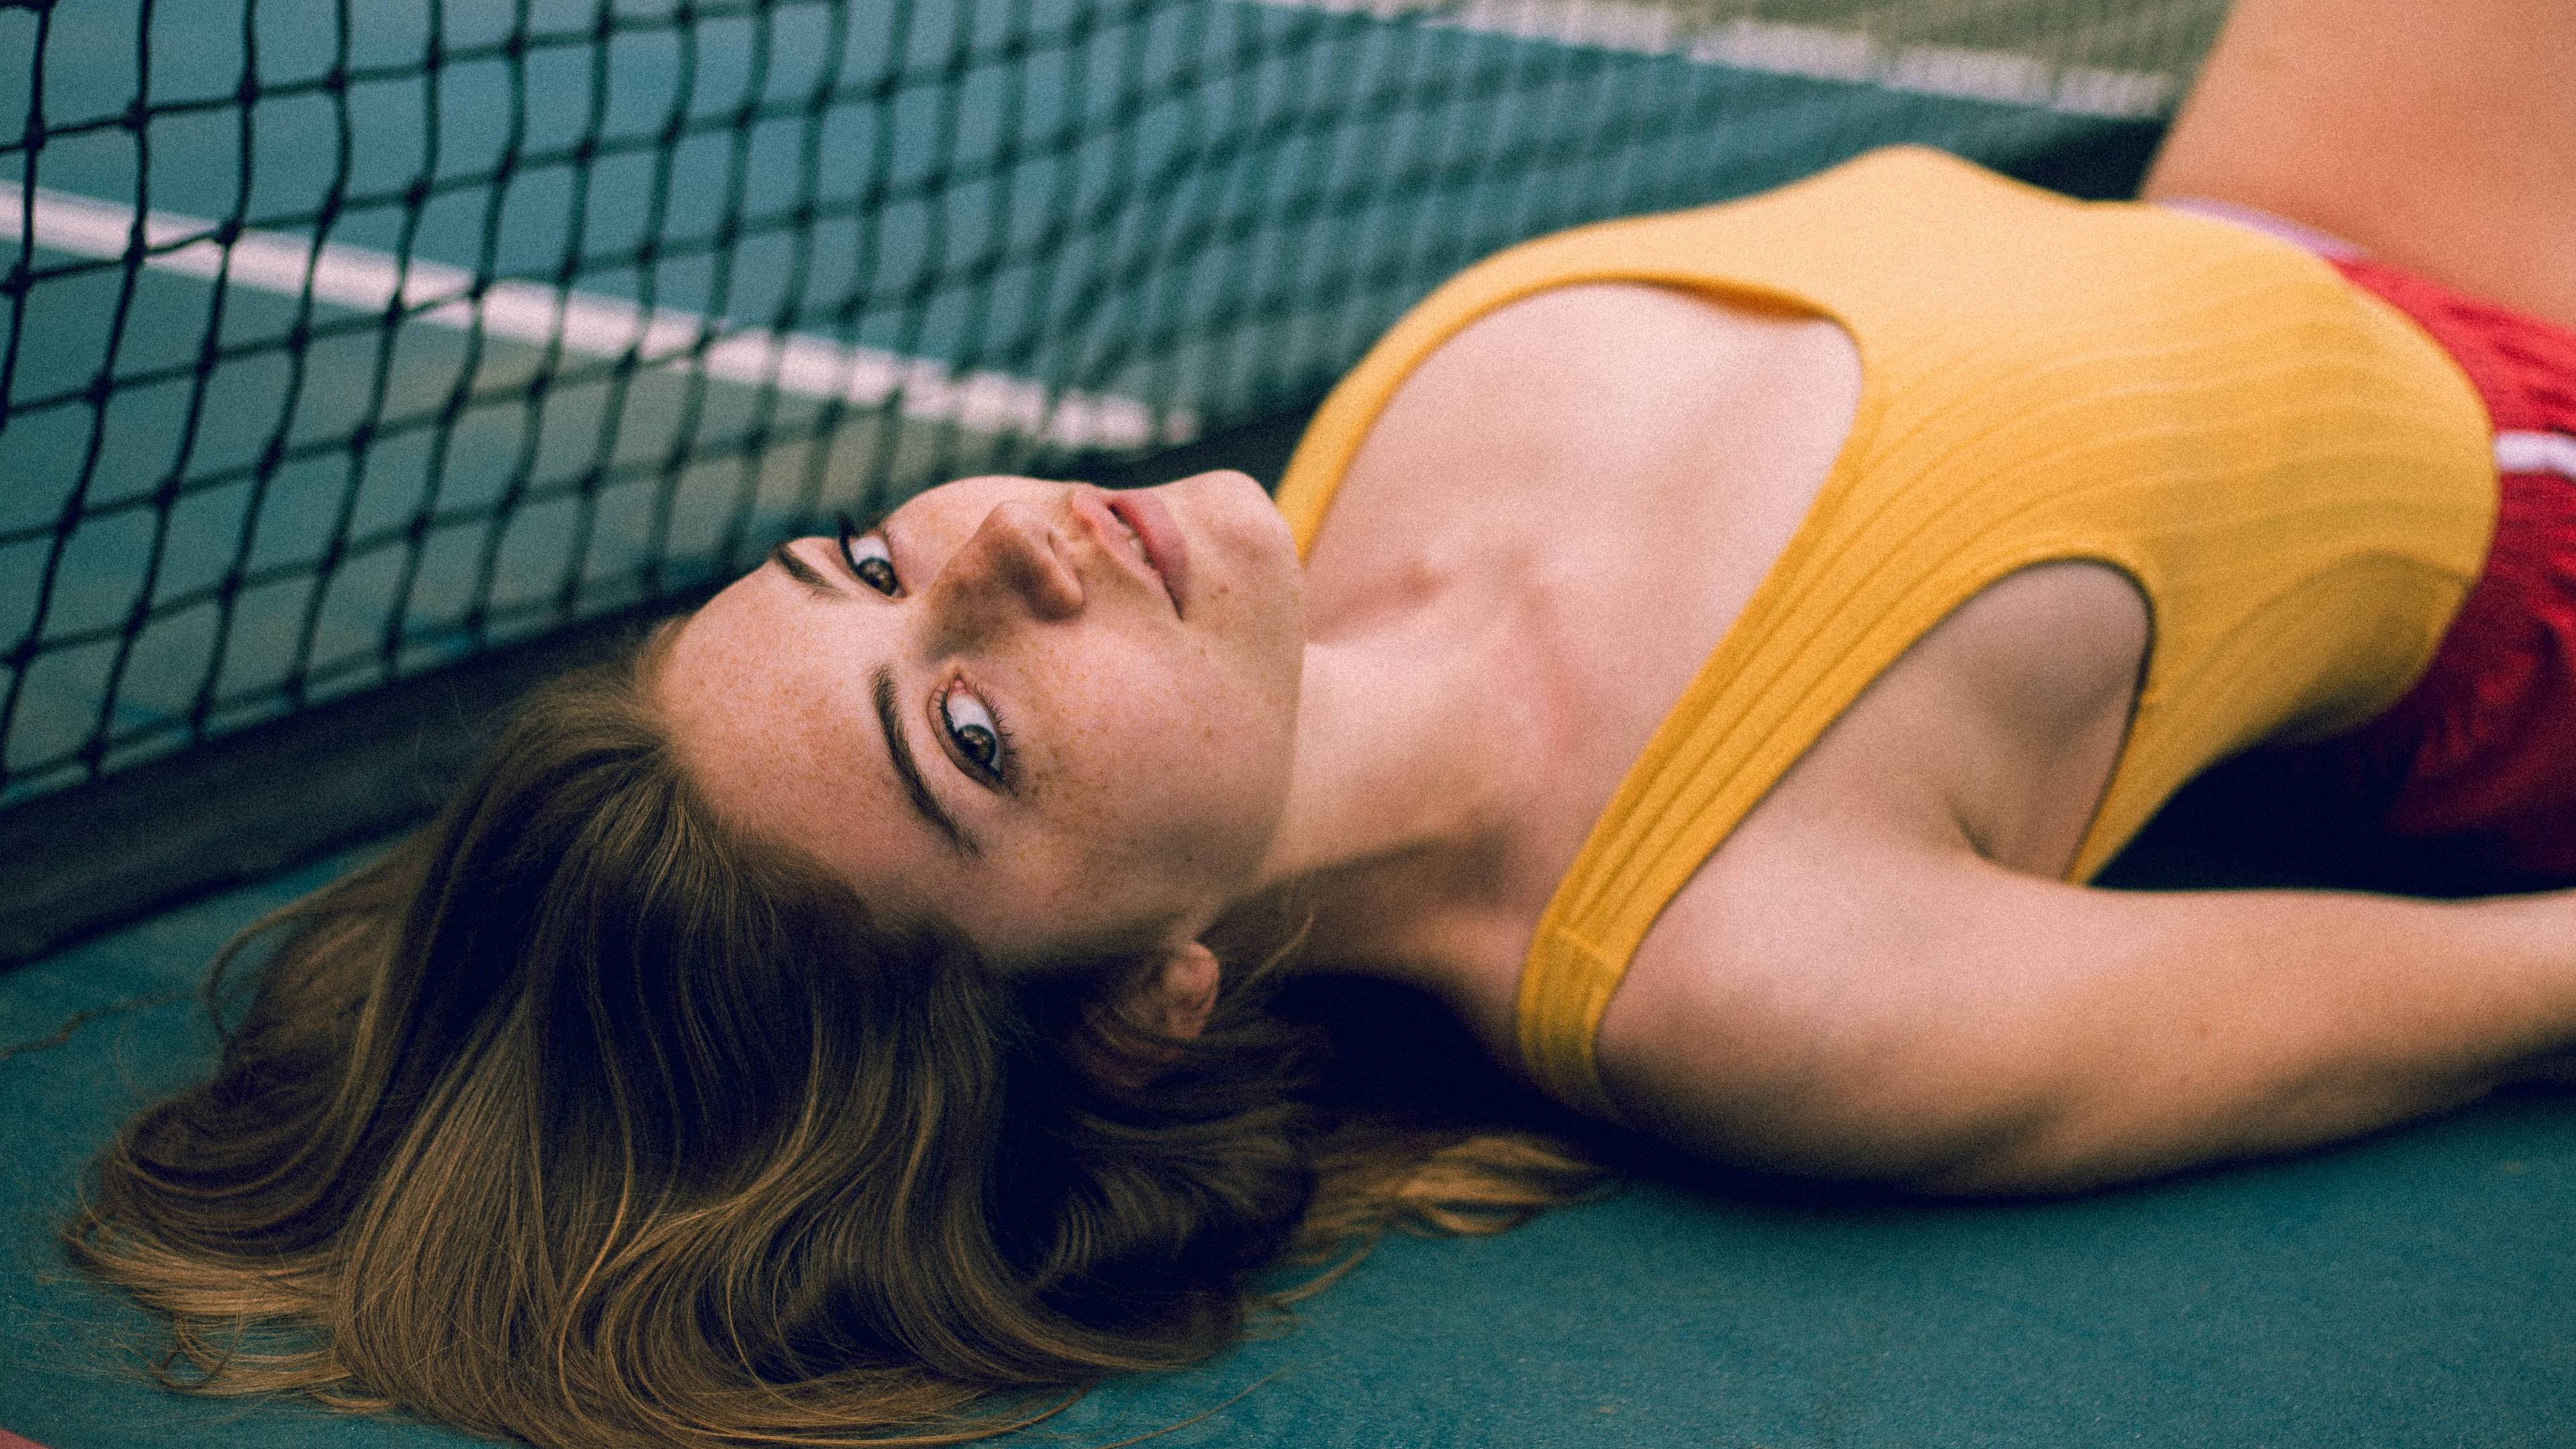 Girl Laying on a Tennis Court wallpaper